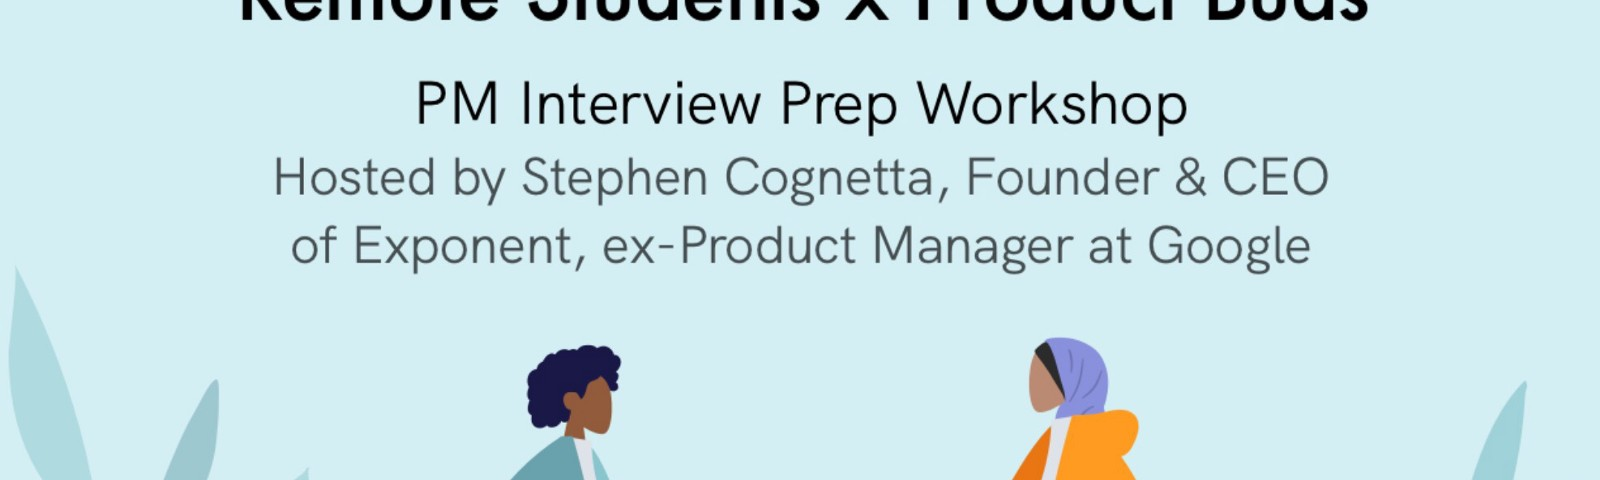 remote students x product buds pm interview prep workshop event cover photo